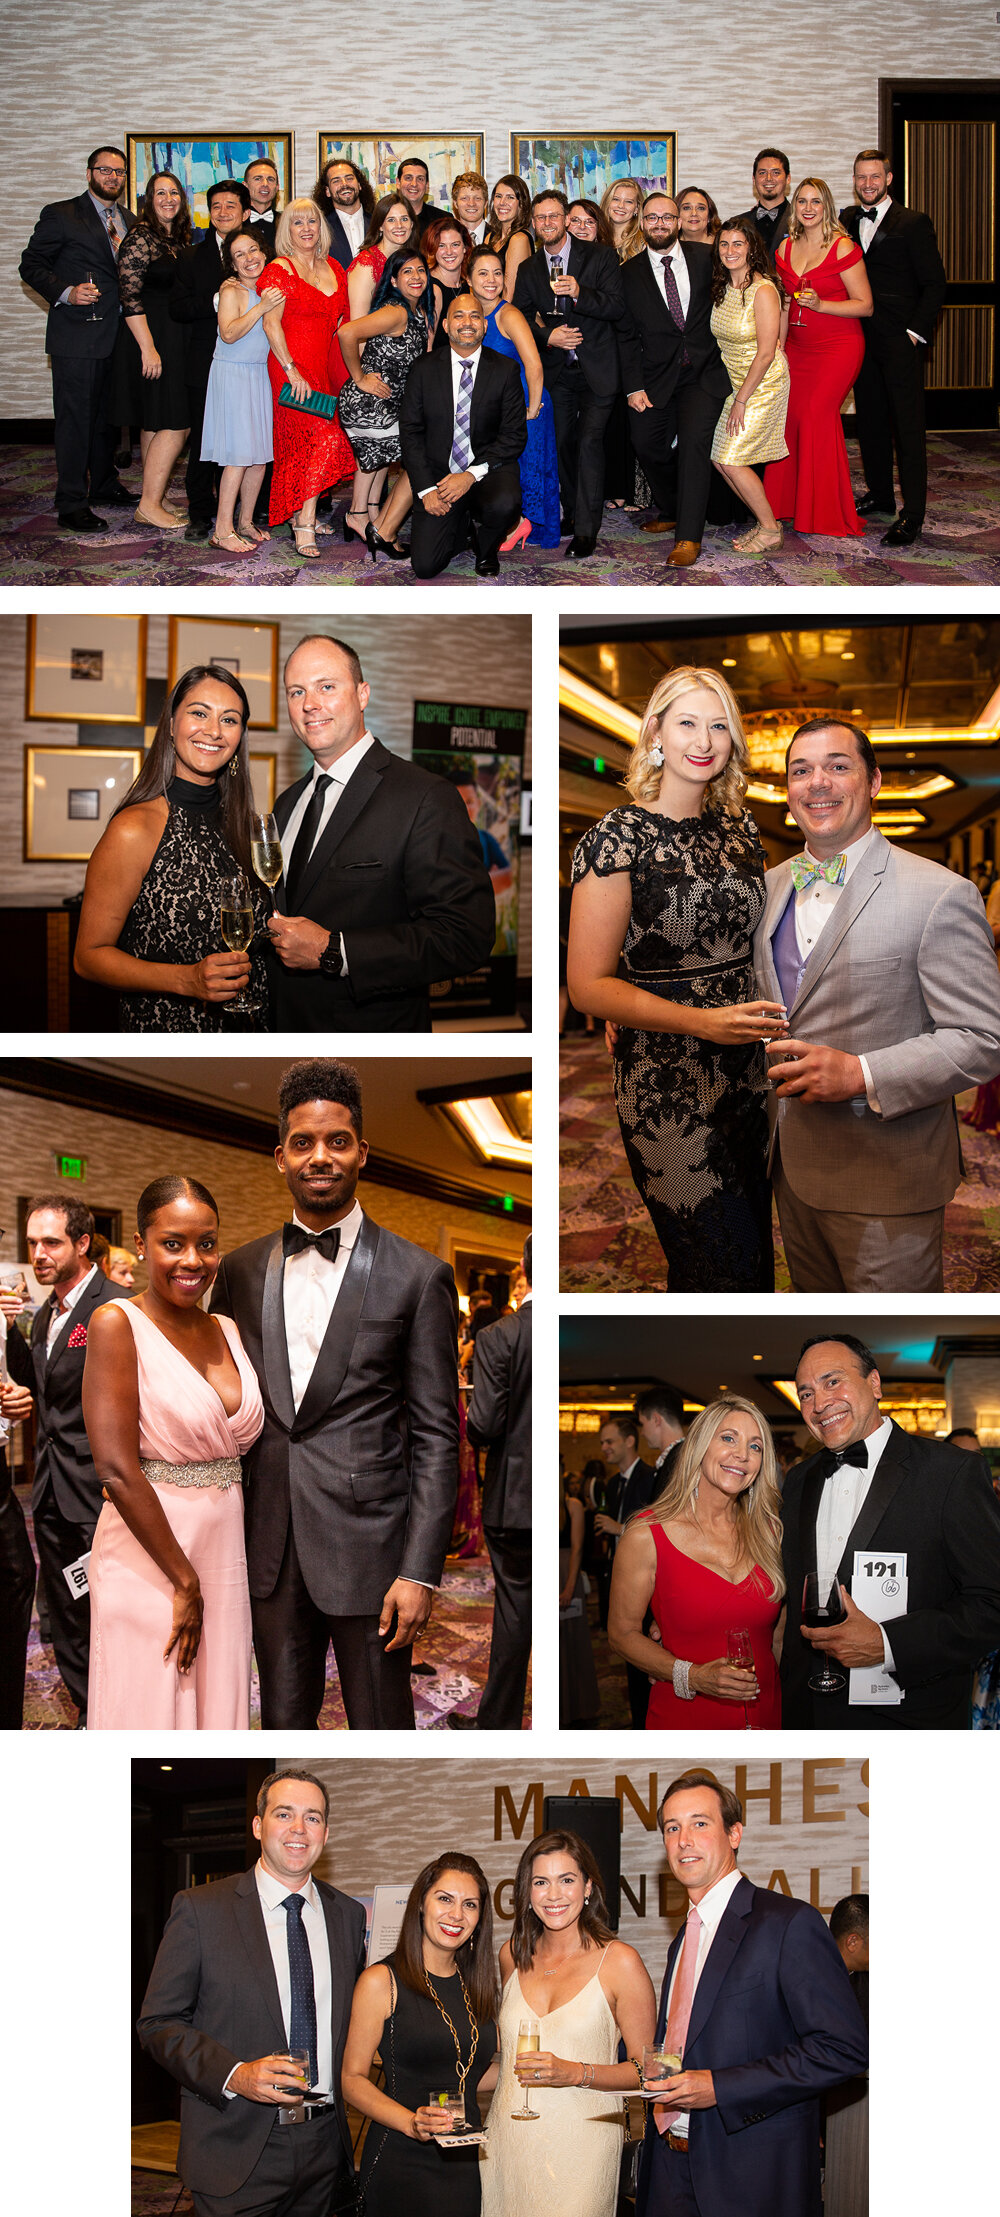 Guests at the Big Brother Big Sister Ice Ball in Austin TX. Photo by Erin Reas event photographer.